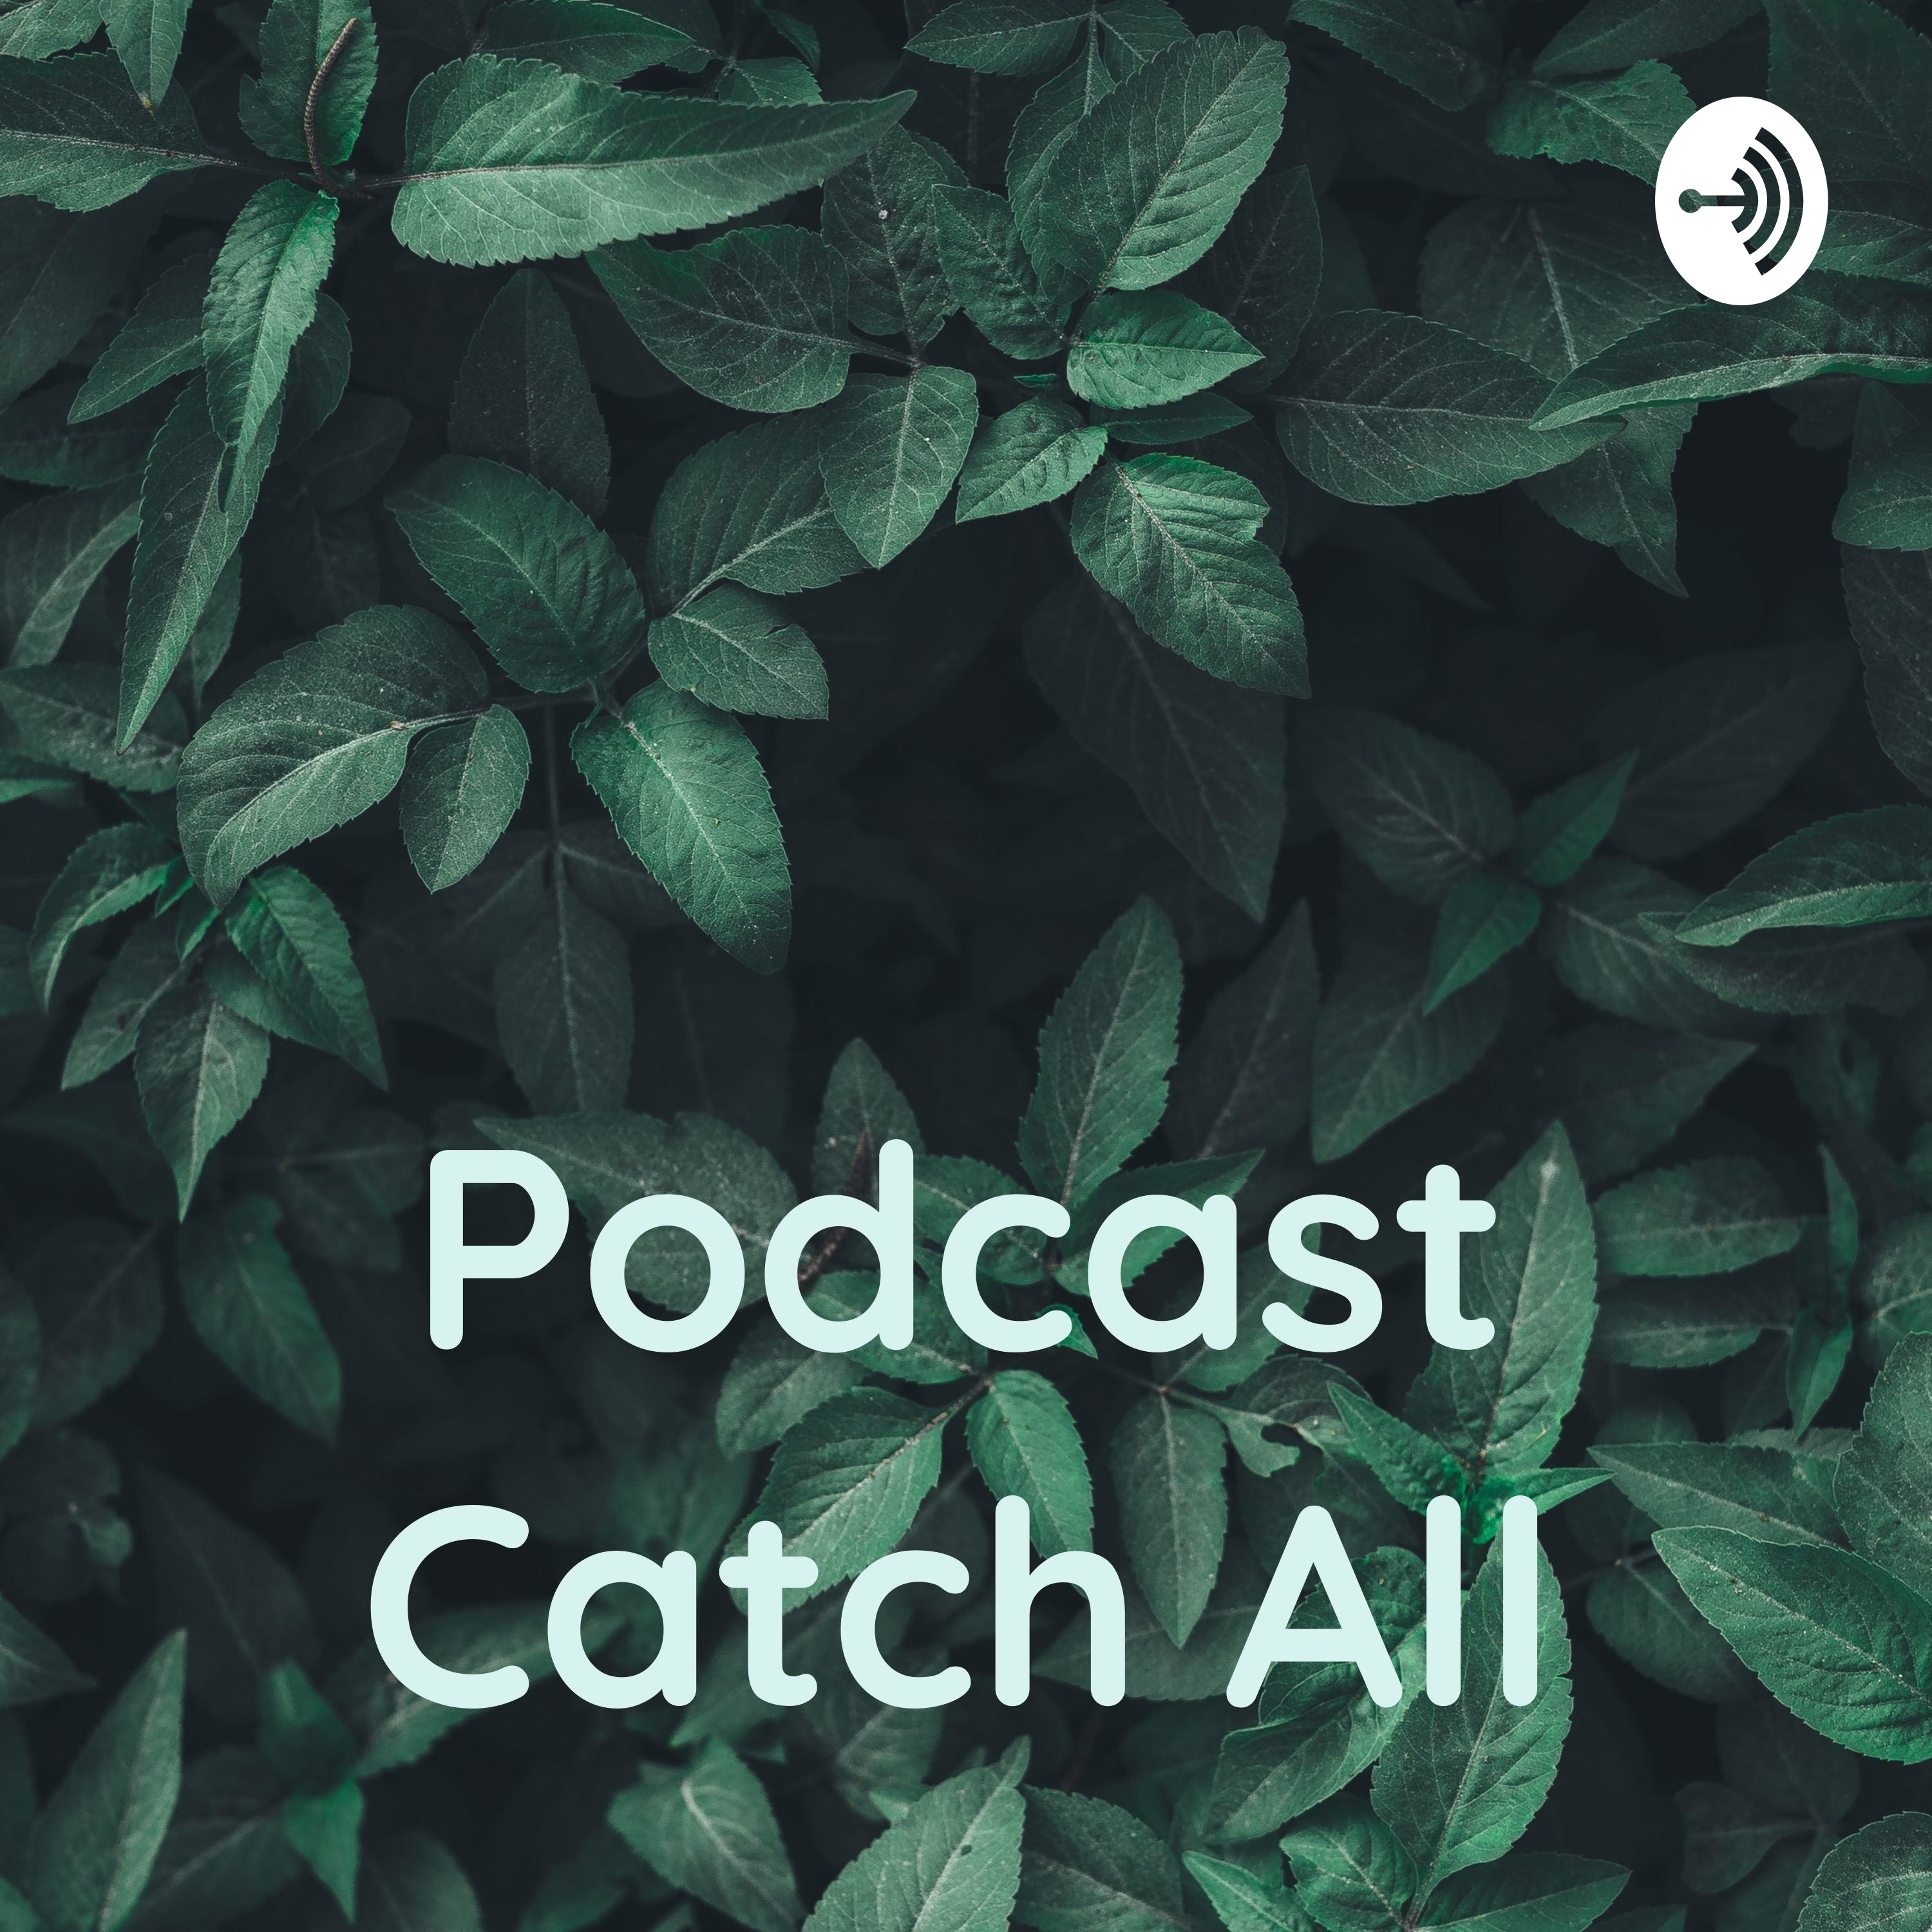 Podcast Catch All (Trailer)